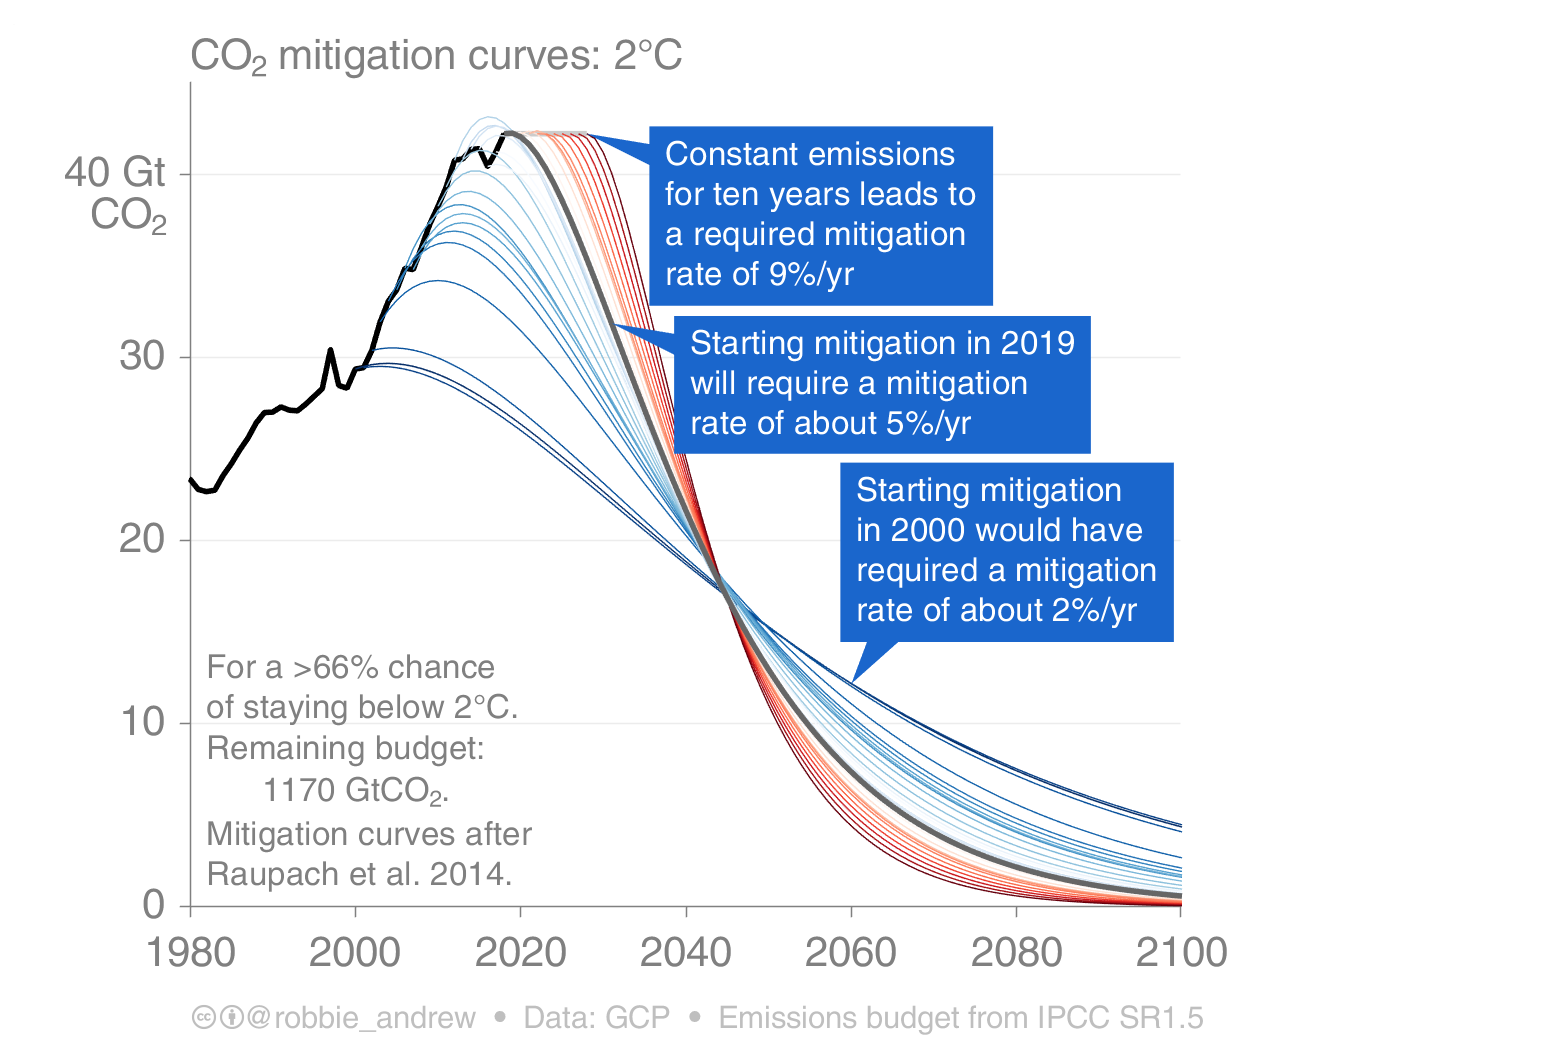 CO2 mitigation curves 2.0C from Robbie Andrew